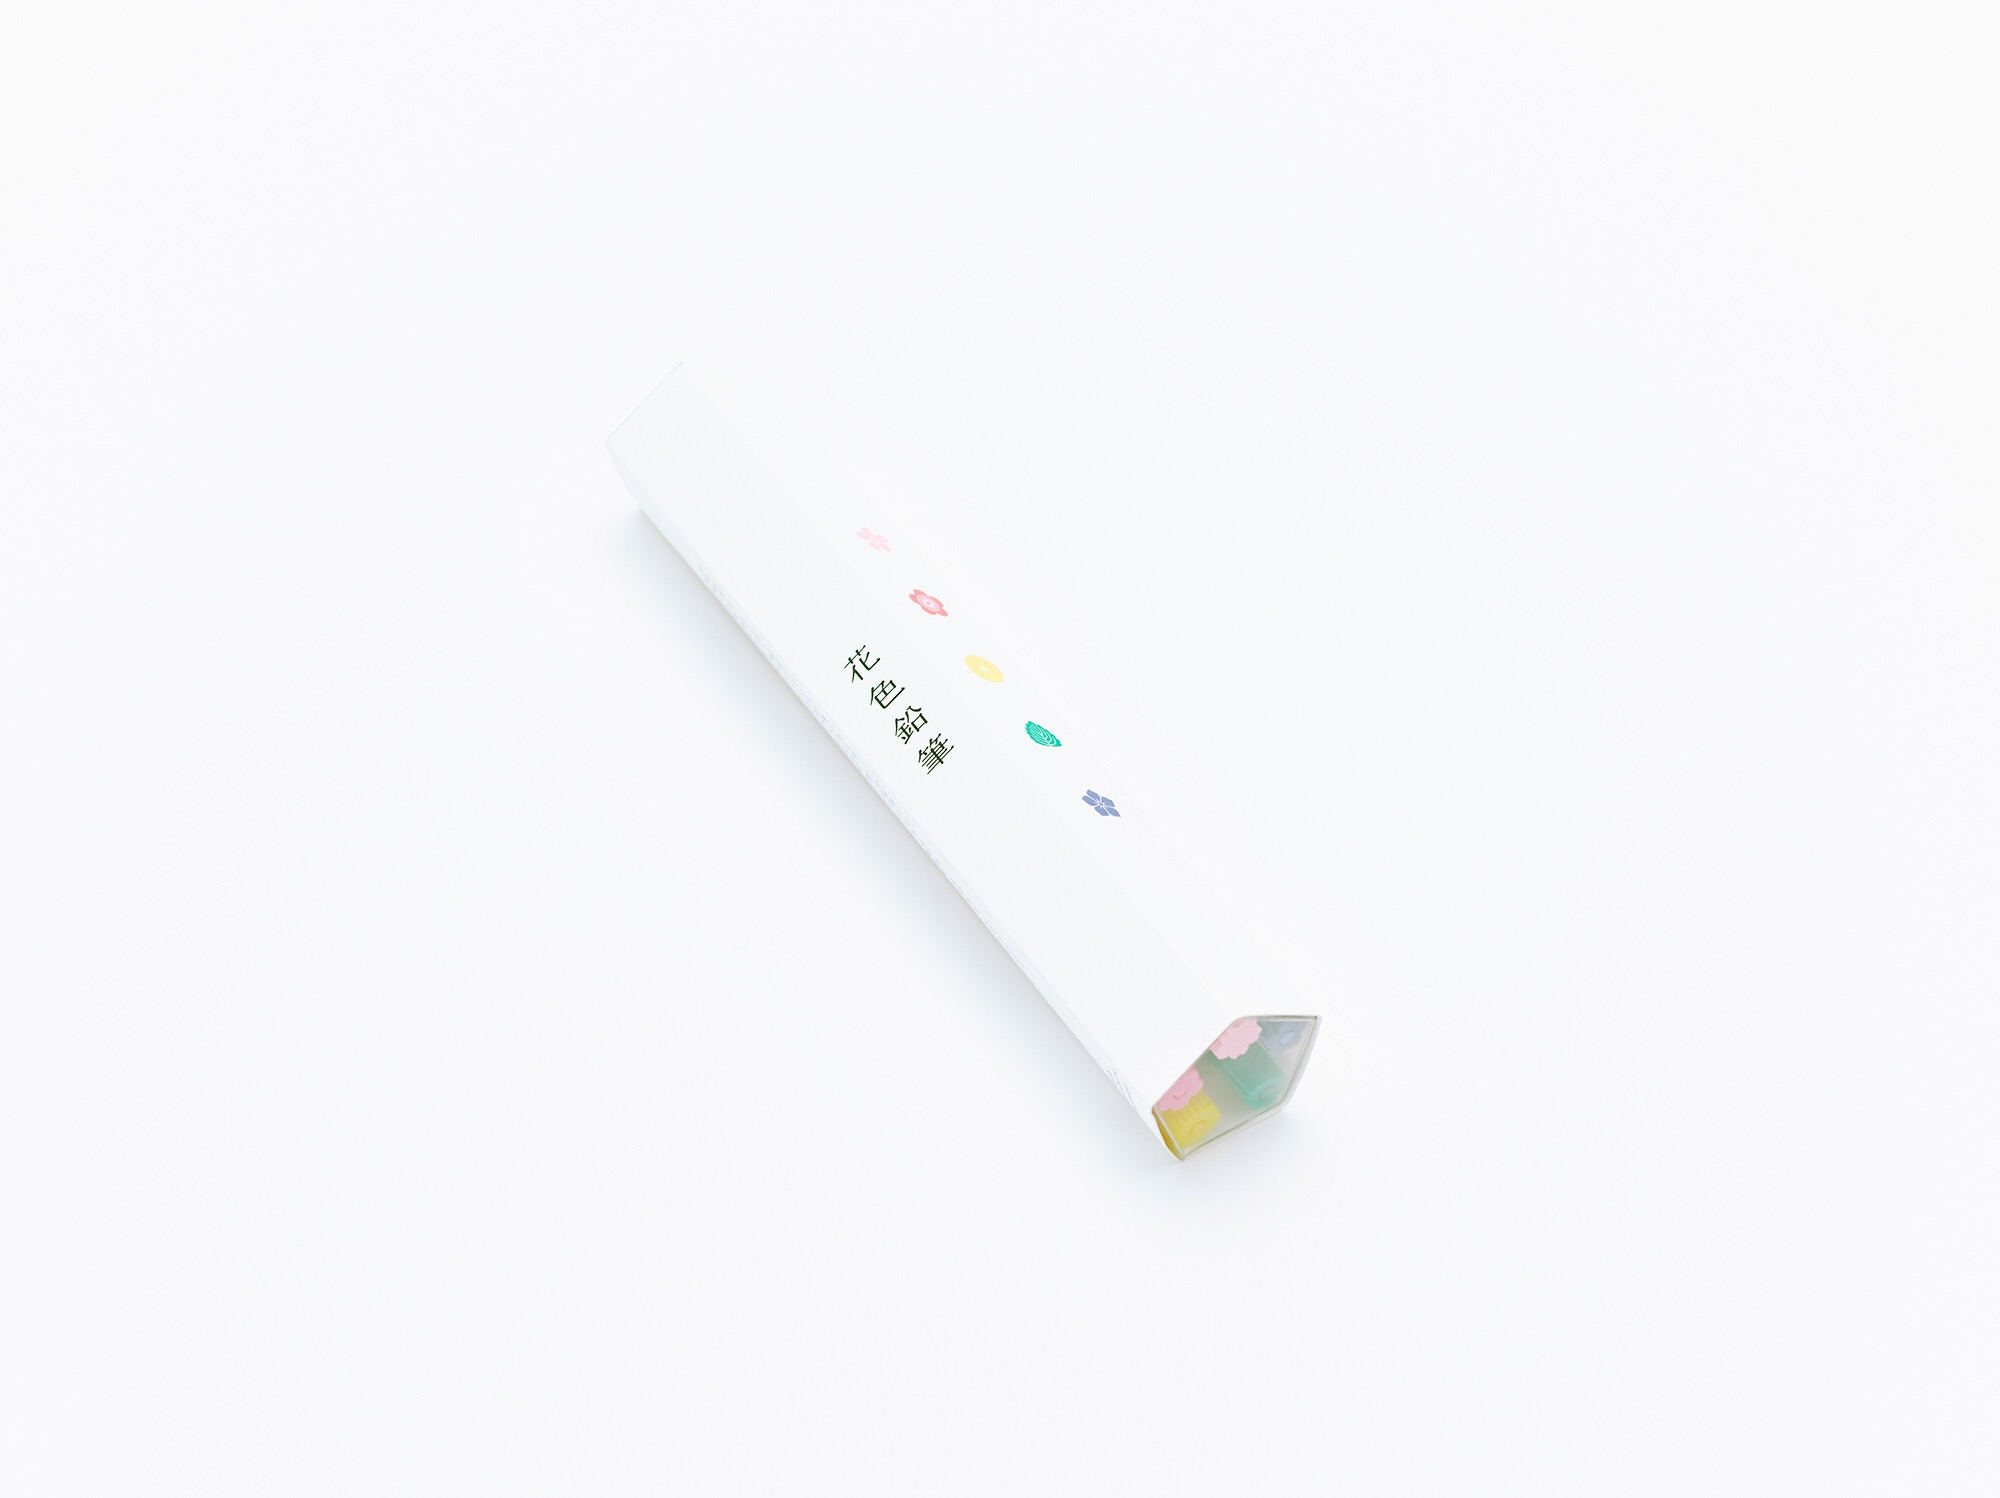 Colored Pencils That Sharpen Into Symbolic Japanese Flowers and Plants